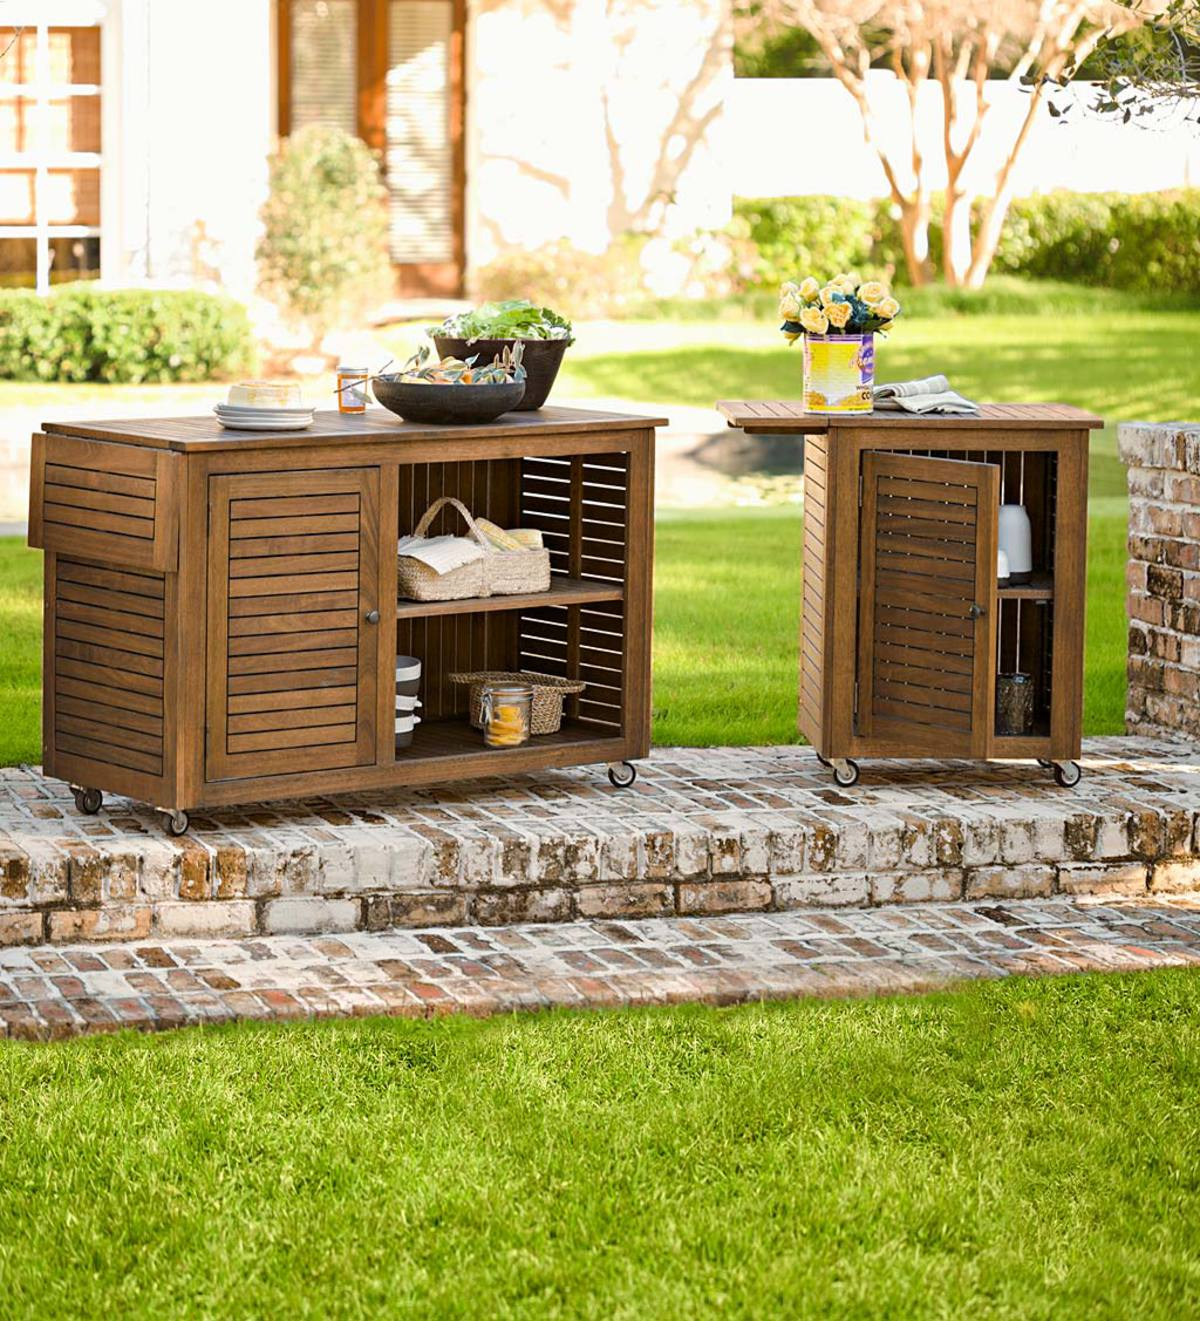 Eucalyptus Wood Rolling Carts, Lancaster Outdoor Furniture Collection